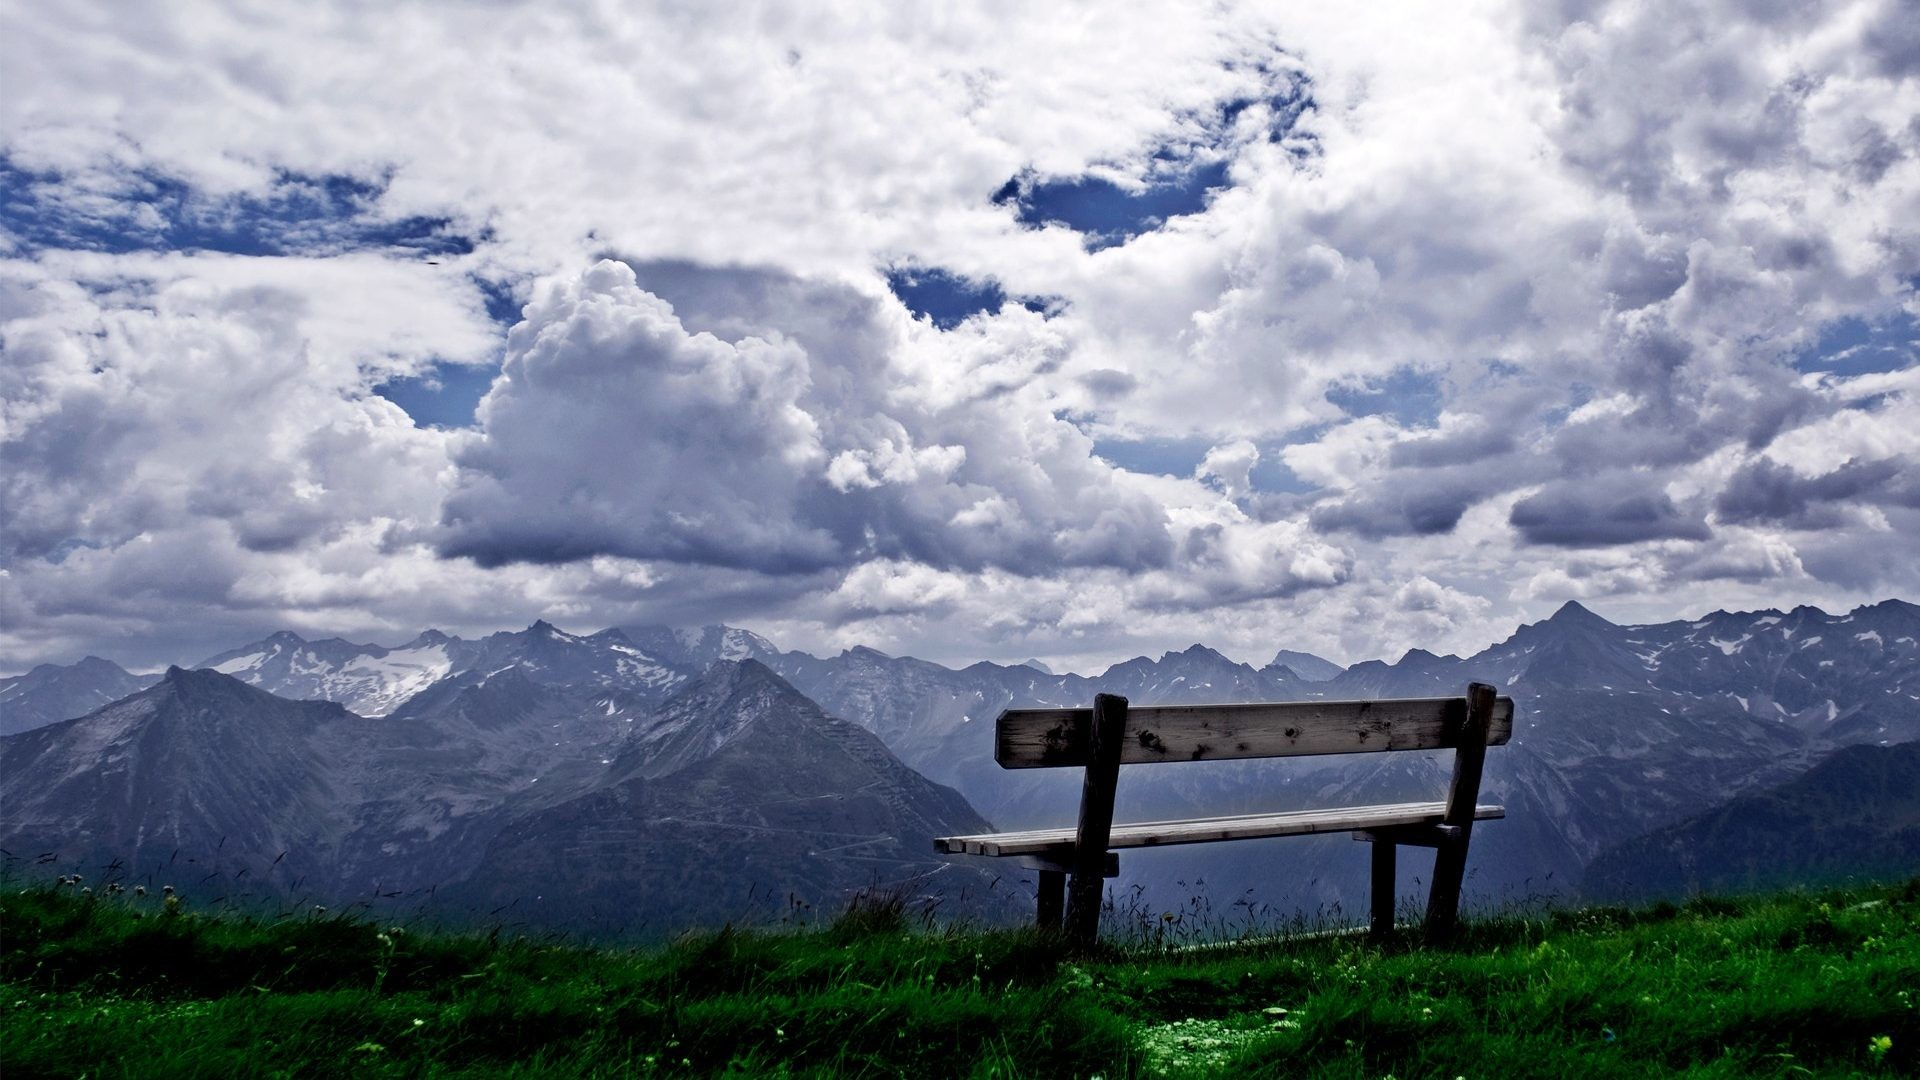 1920x1080 Scencery Peaceful Park Mountains White View Sky Green Reflection Beauty  Relax Blue Rest Break Nature Landscape Chair Grey Clouds Bench Scenic Hill  Grass ...